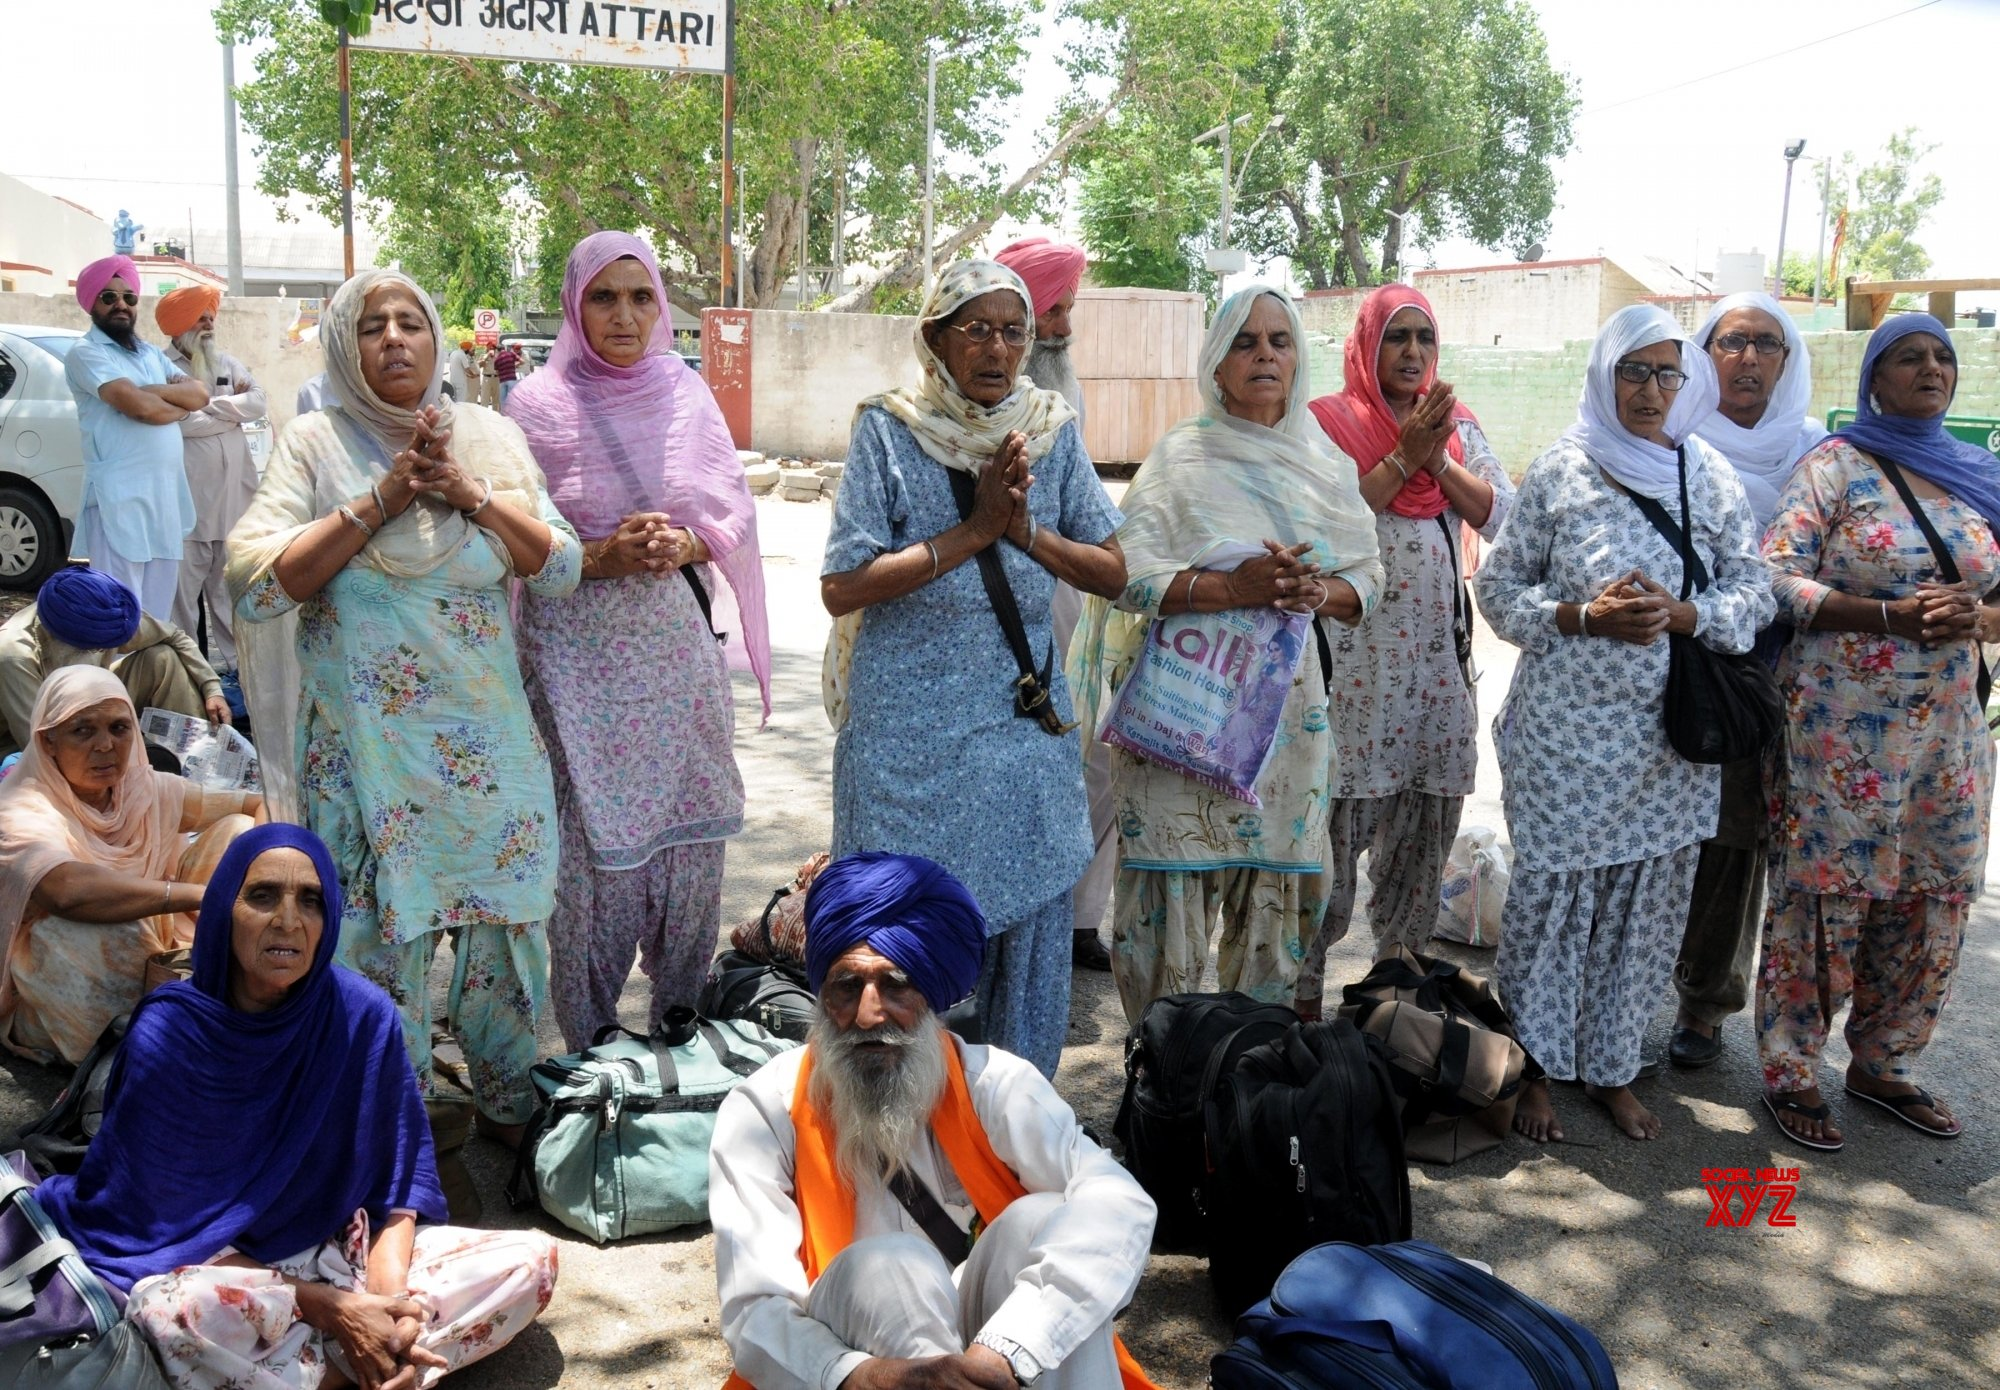 Attari: Pakistan - bound Sikh pilgrims stranded at Attari station #Gallery